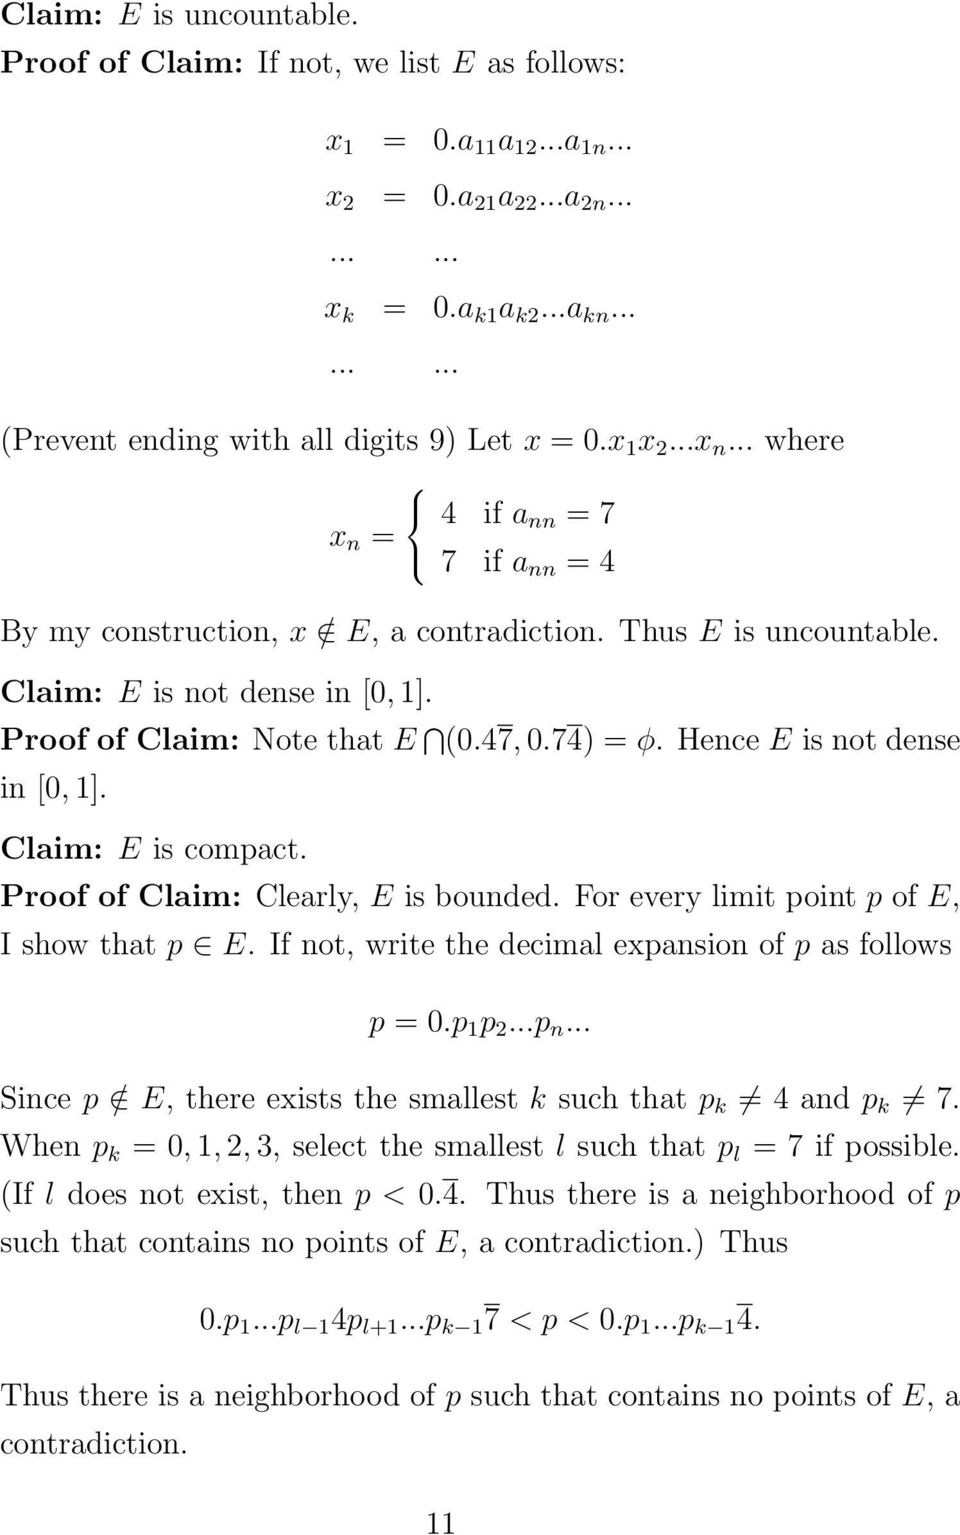 Claim: E is not dense in [0, 1]. Proof of Claim: Note that E (0.47, 0.74) = φ. Hence E is not dense in [0, 1]. Claim: E is compact. Proof of Claim: Clearly, E is bounded.